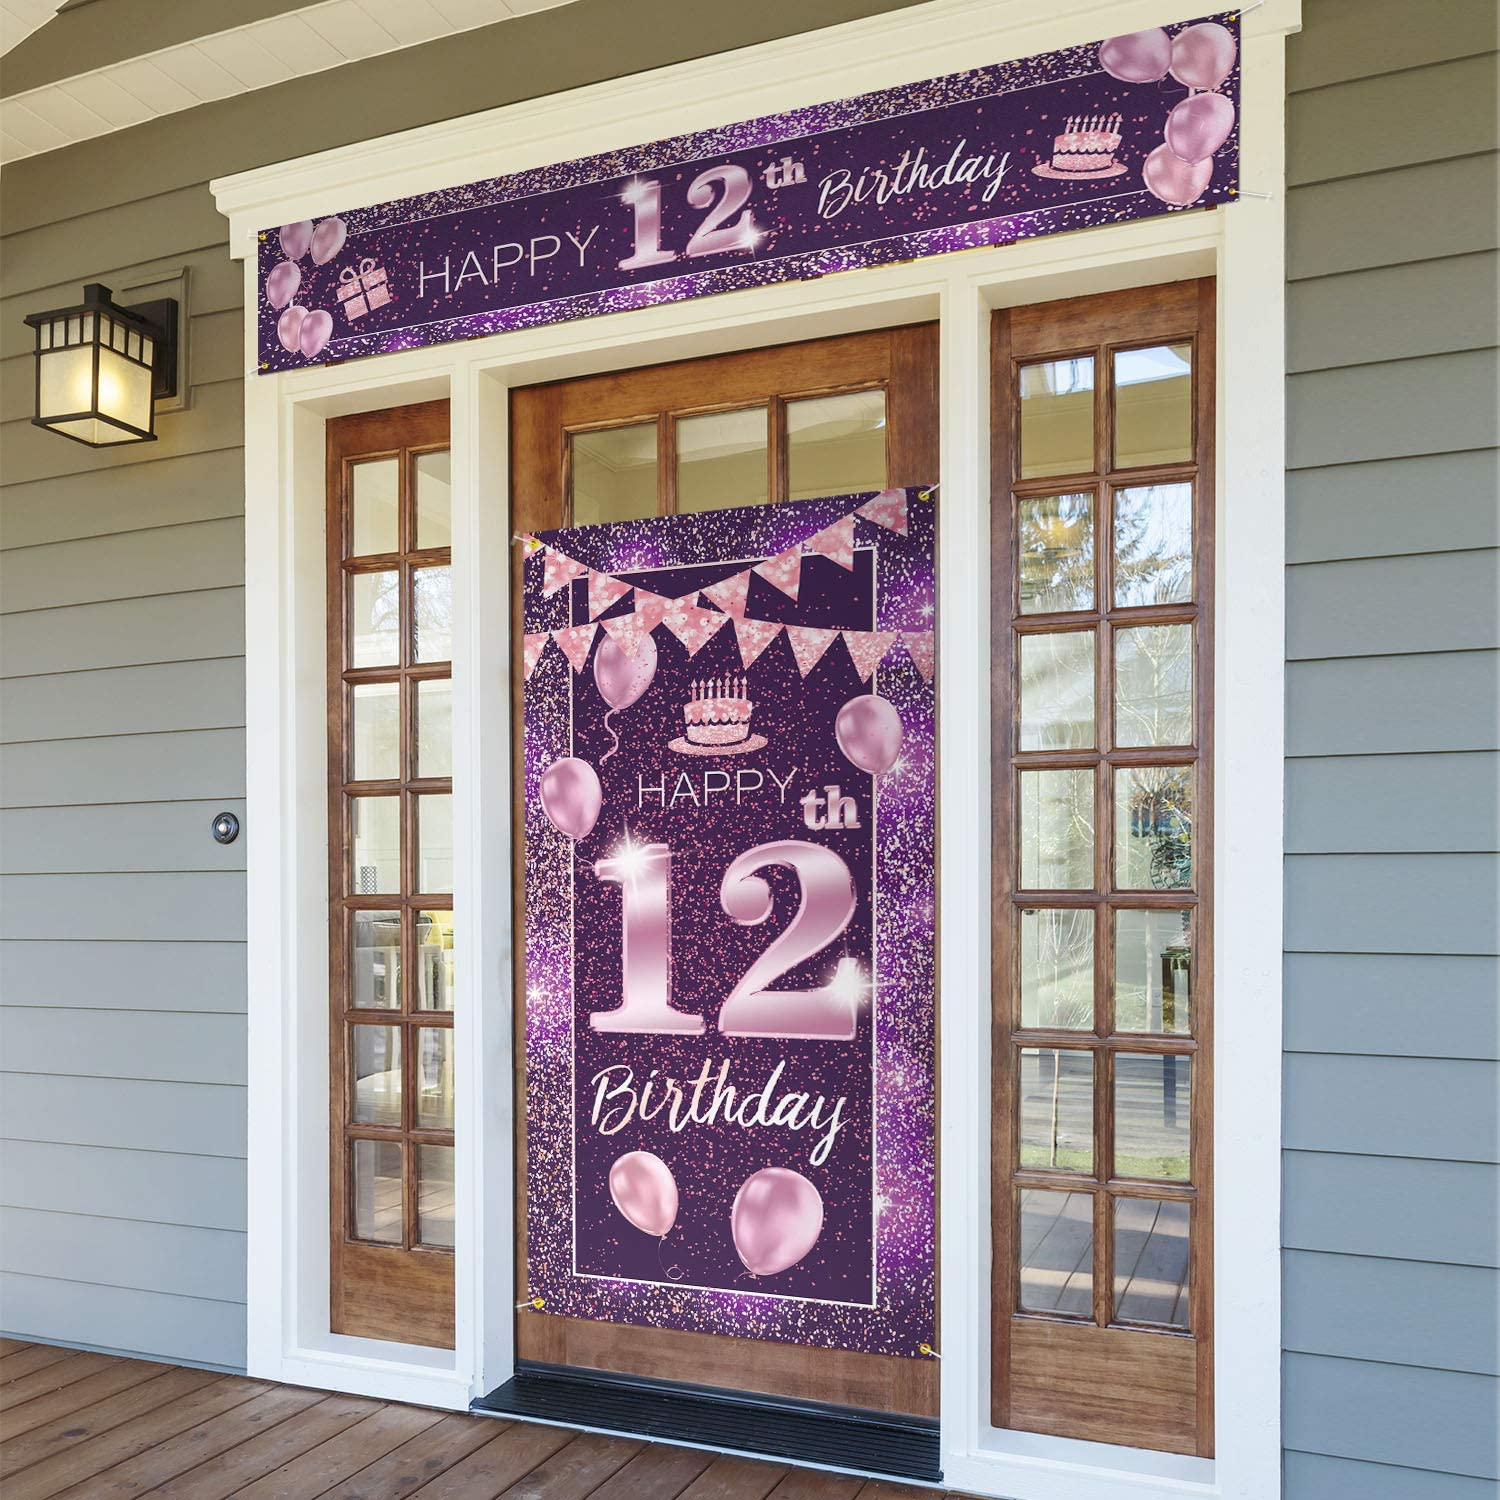 PAKBOOM Happy 12th Birthday Door Cover Porch Banner Sign Set - 12 Years Old Birthday Decoraions Party Supplies for Girls - Purple Pink